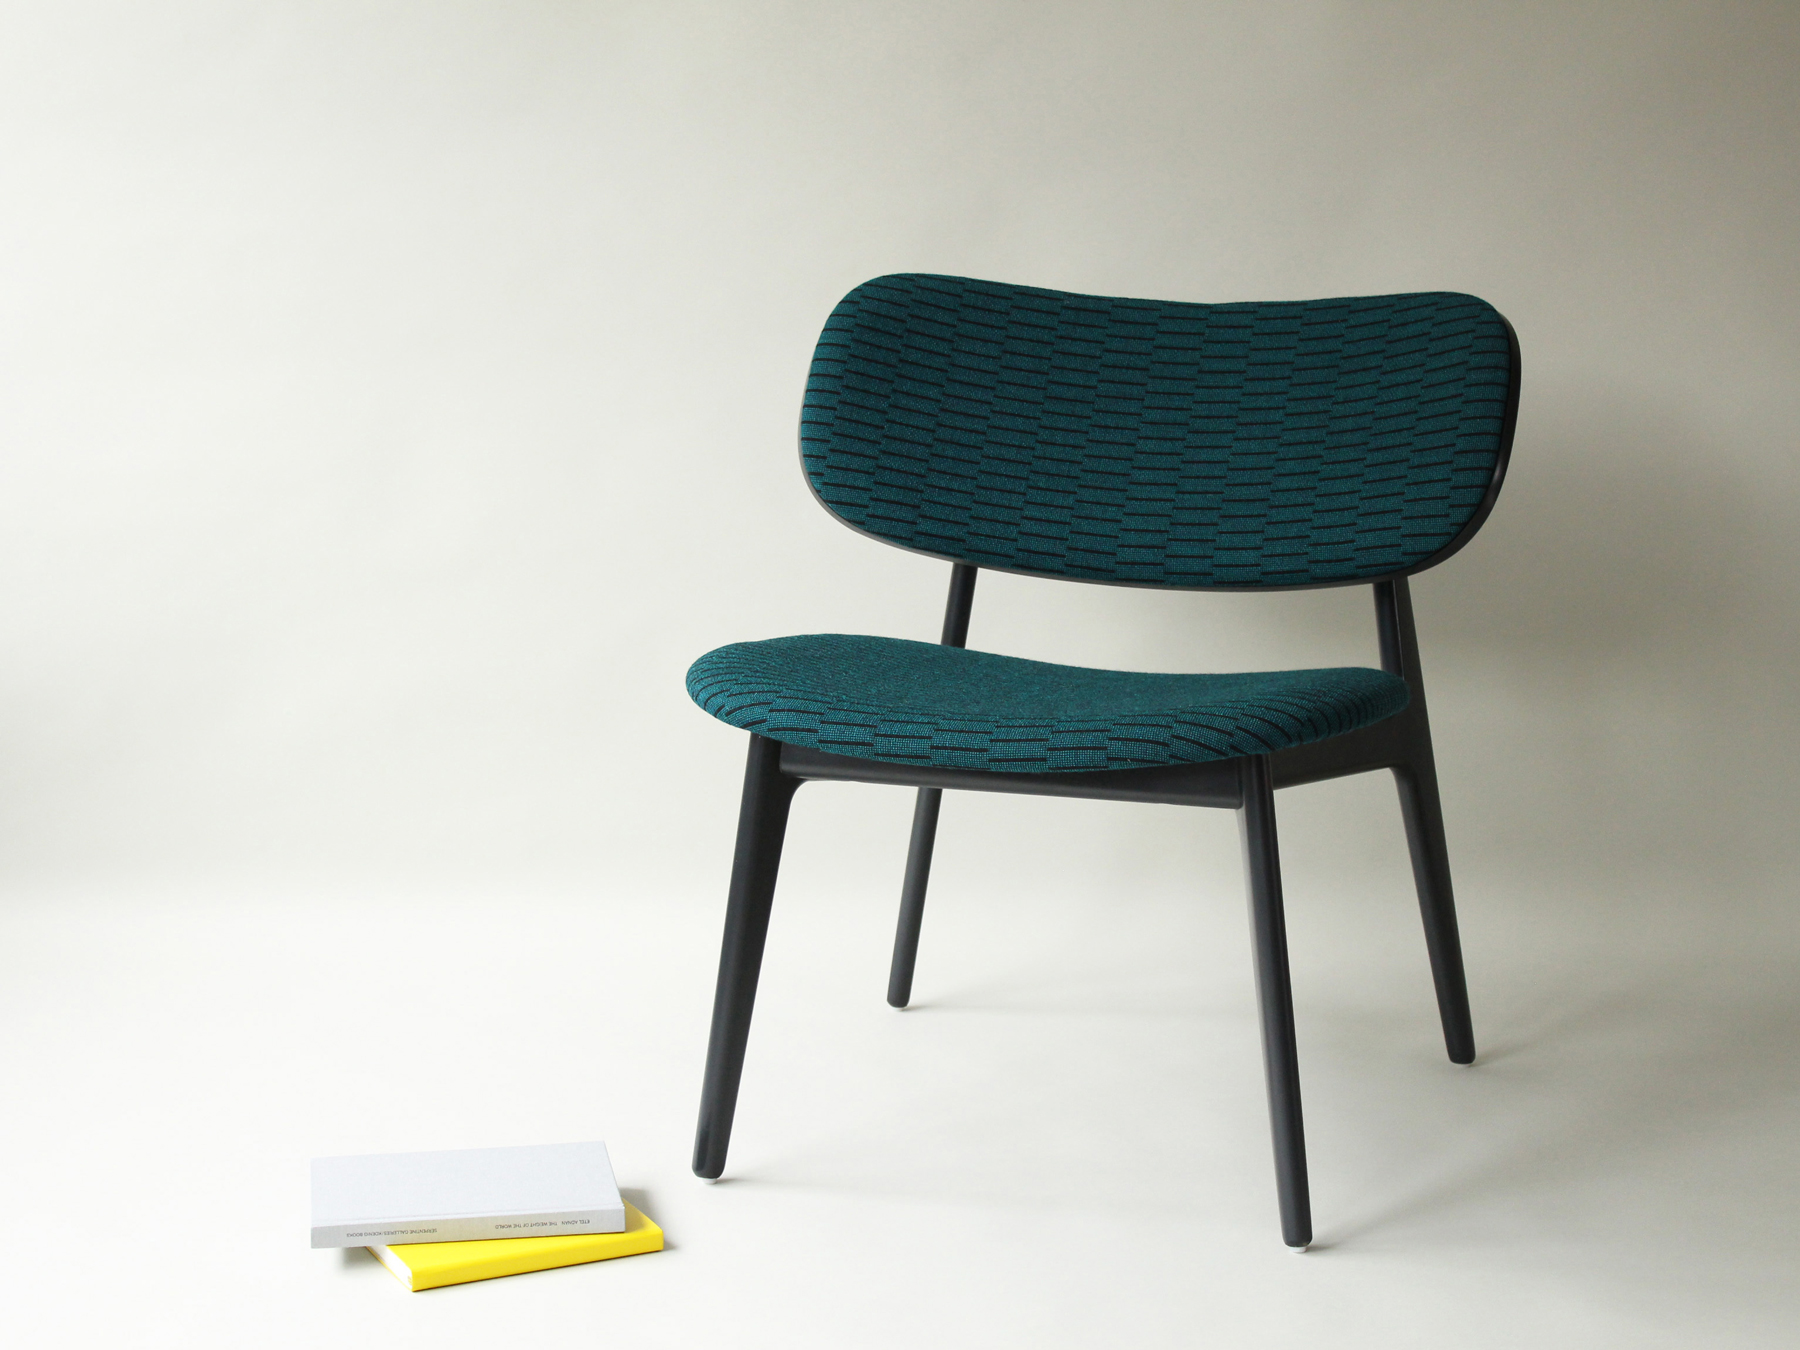 Modus_PLC_lounge_chair_by_PearsonLloyd_with_Caldbeck_fabric_by_Eleanor_Pritchard_1.jpg